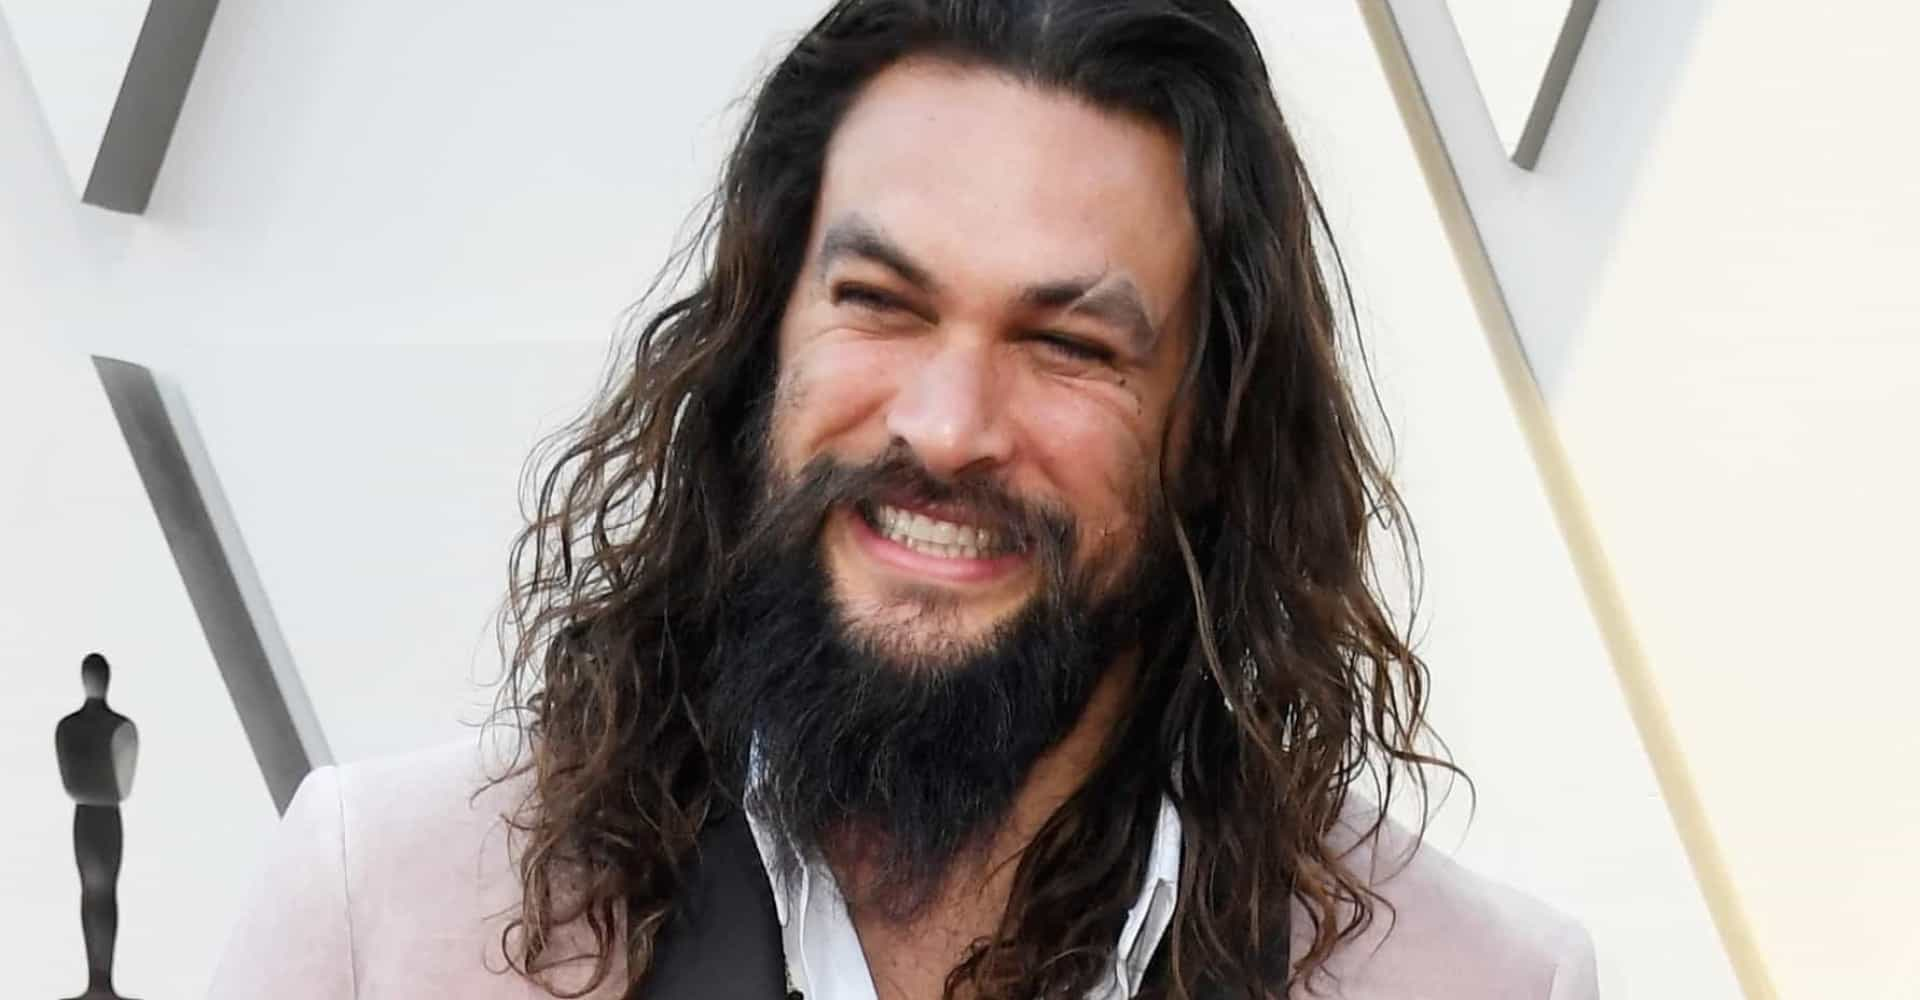 Jason Momoa: 40 years of Hollywood's hardest heartthrob